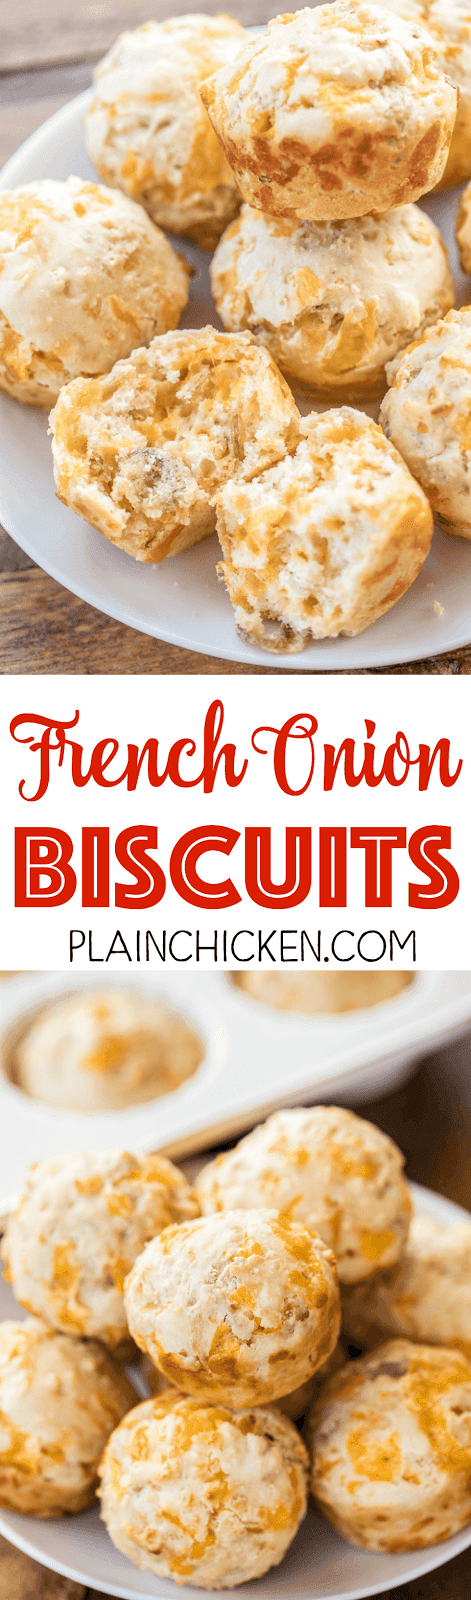 French Onion Biscuits - only 5 ingredients! The hardest part of making these biscuits is resisting the urge to snack on the French fried onions while making the batter! Bisquick, cheddar cheese, French fried onions, eggs and milk. SO easy and they taste great!!! Great for any night of the week!